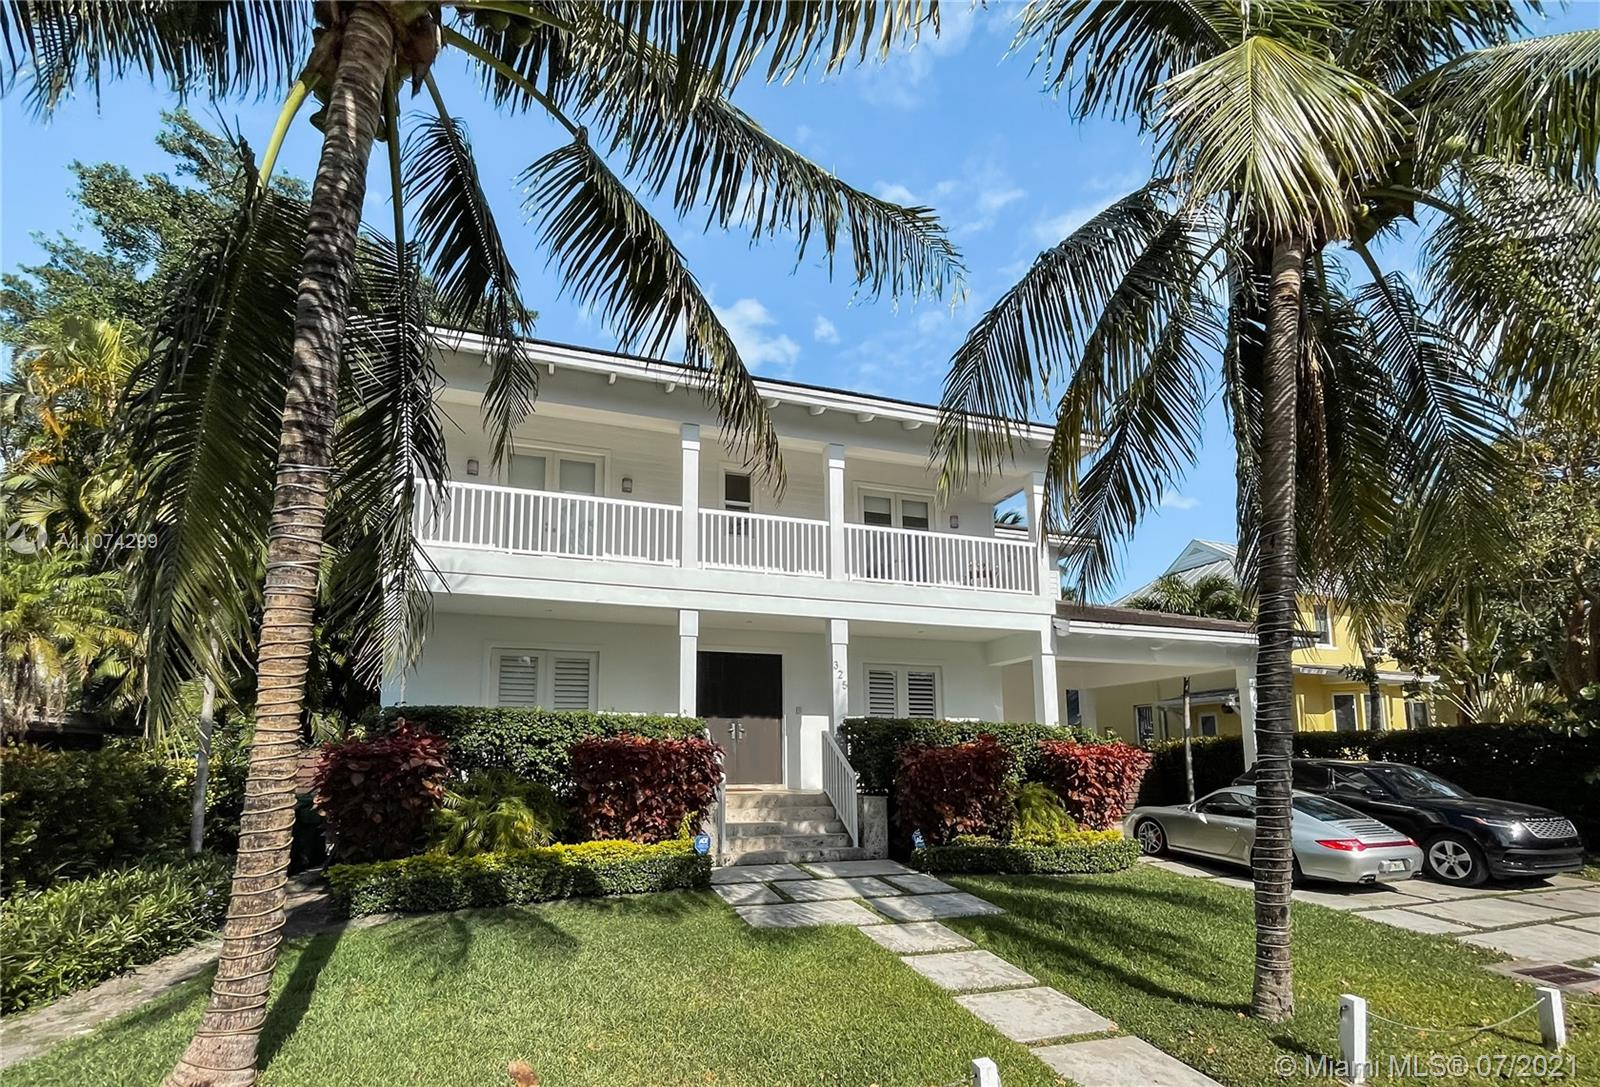 Located in the north side of Key Biscayne, this Key West Style home offers a laid-back and practical floor plan with exceptional craftsmanship focused on quality of life just minutes away from the Key Biscayne park and the beach. The 2-story home was built in 2012 and features 6-bedrooms and 6.5-bathrooms under 3,868 SF of living space plus 2 oversized covered terraces overlooking the backyard in a 7,606 SF lot. On the first floor a big open floor-plan integrating the dining, living and family room, the first bedroom with ensuite bathroom and service quarters. Upstairs, 4 bedrooms with ensuite bathrooms all with access to private terraces. The grounds are as thoughtful as the interior including and oversized heated pool and a jacuzzi covered by lush landscape for extra privacy.